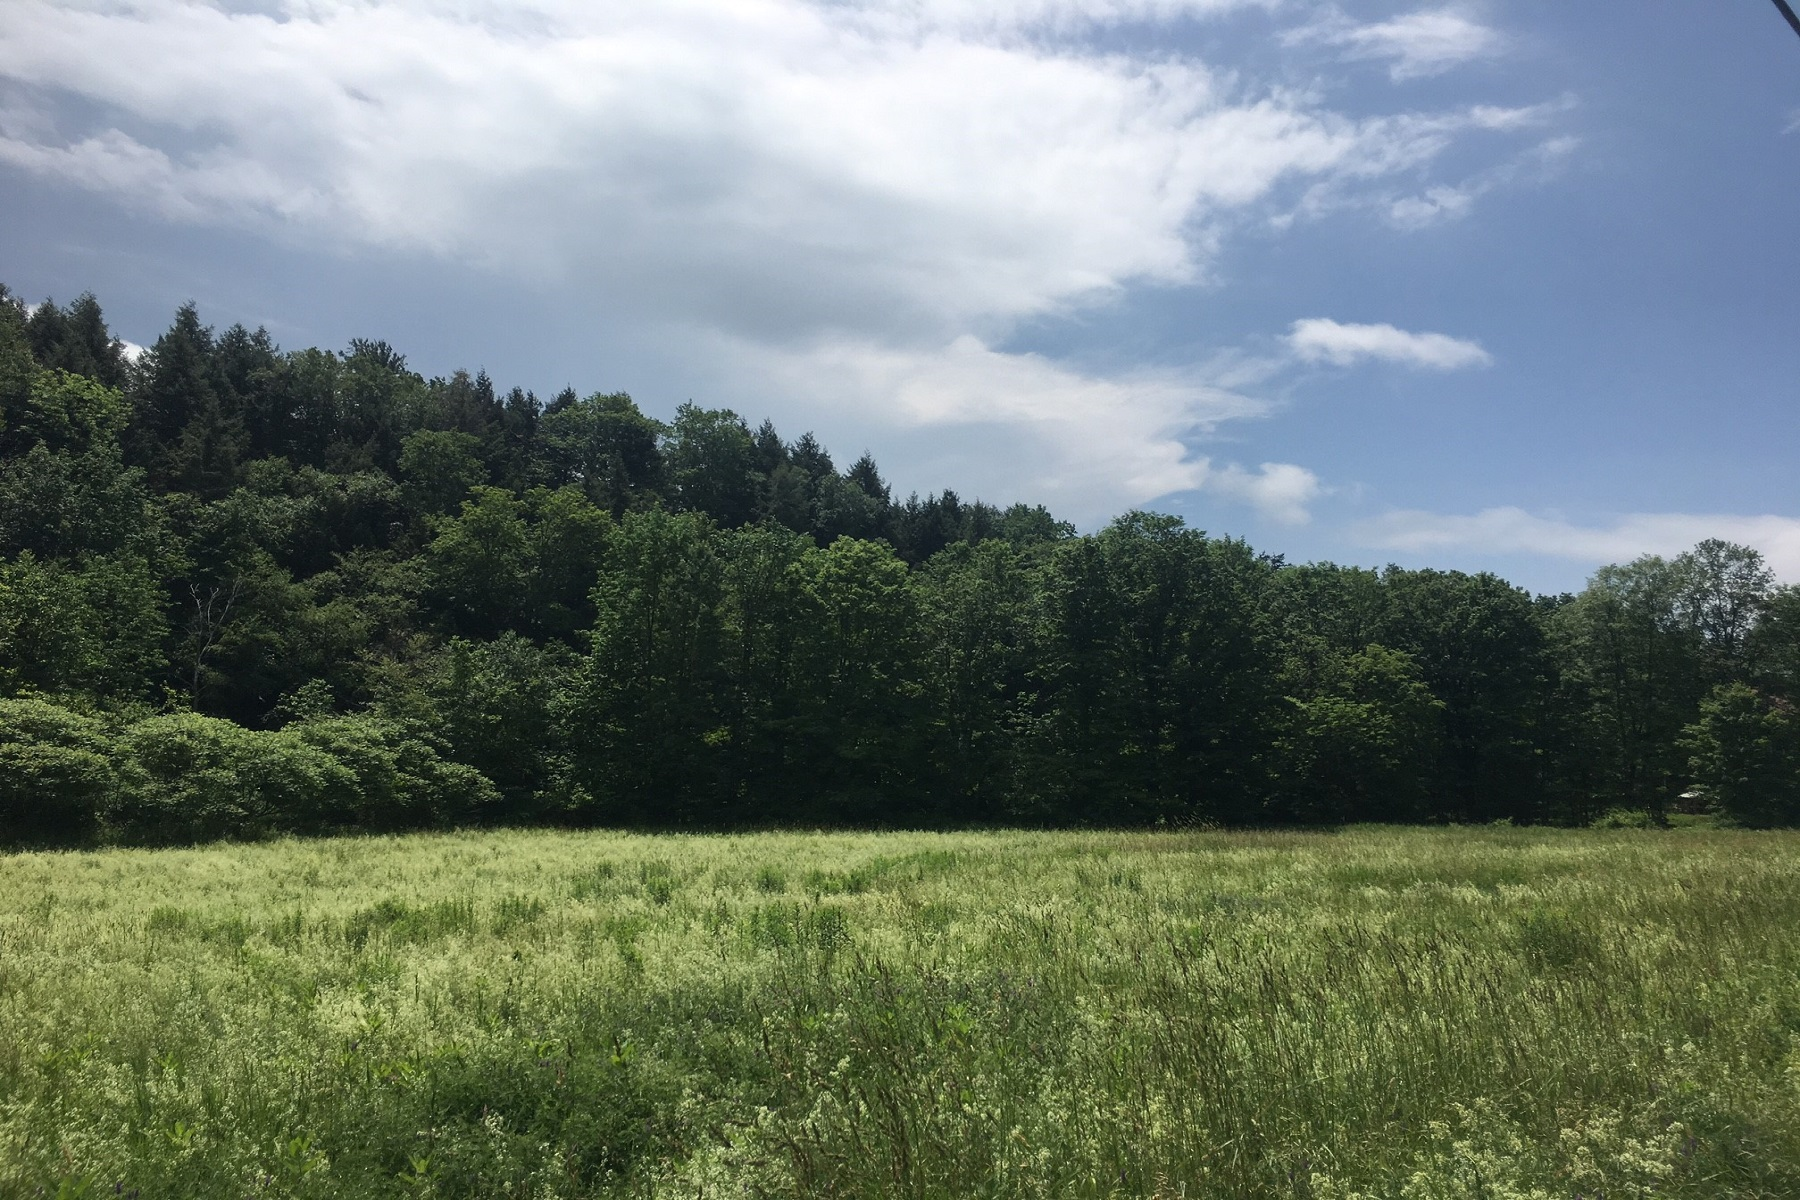 Property for Sale at Property at the Foot of Mt. Ascutney 0000 Rt. 44 West Windsor, Vermont 05037 United States